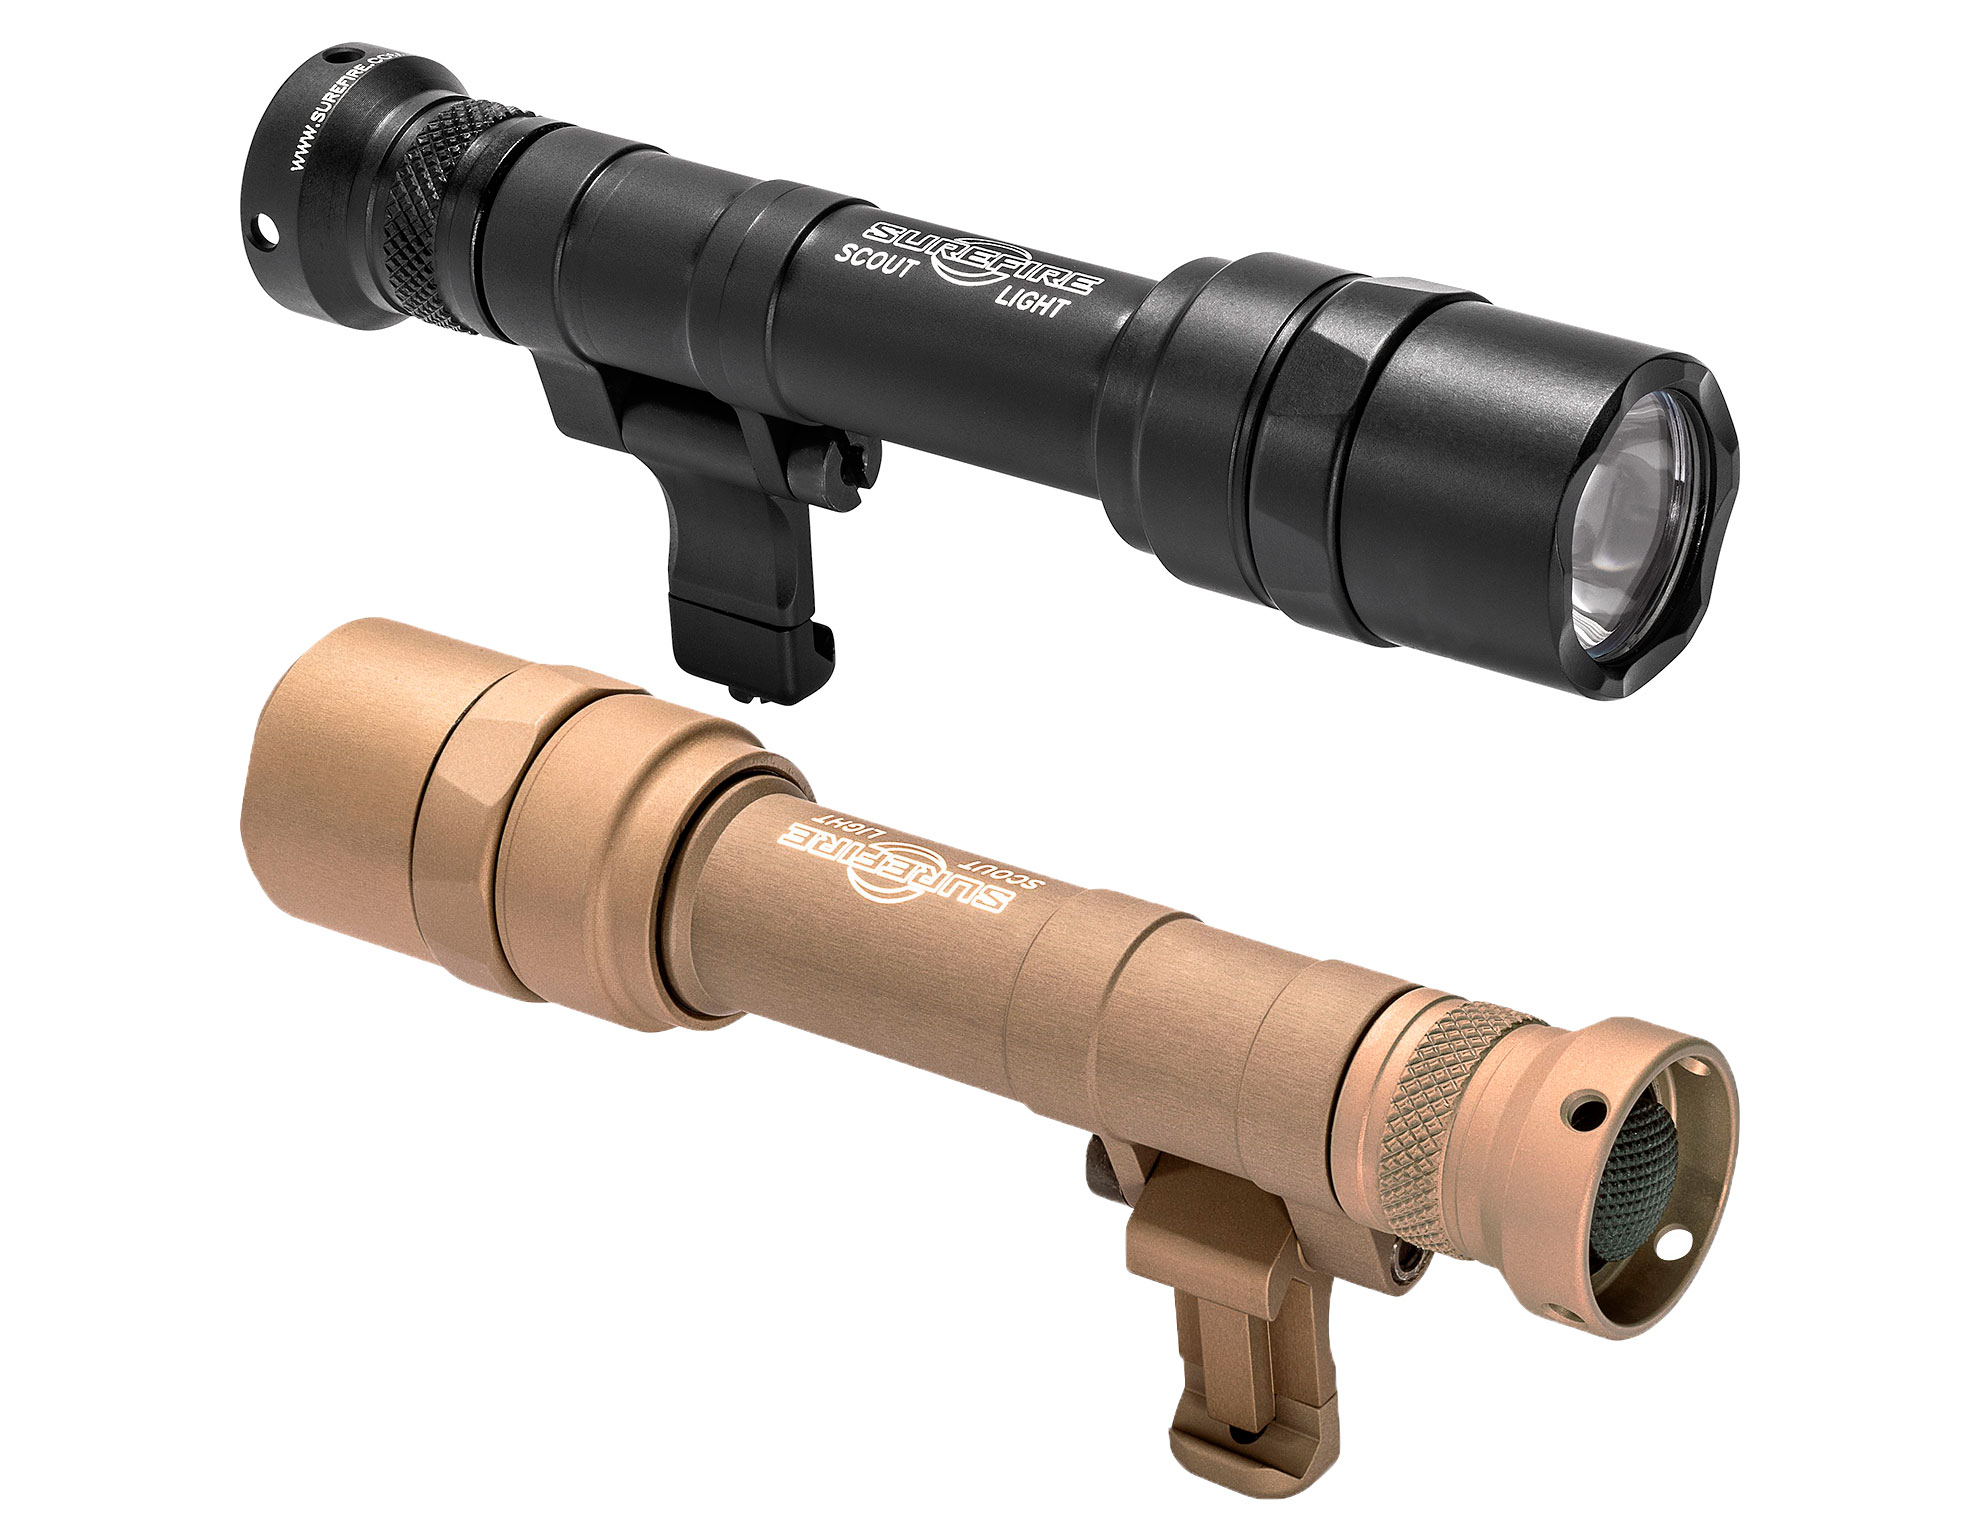 SureFire M640U is available in black or tan